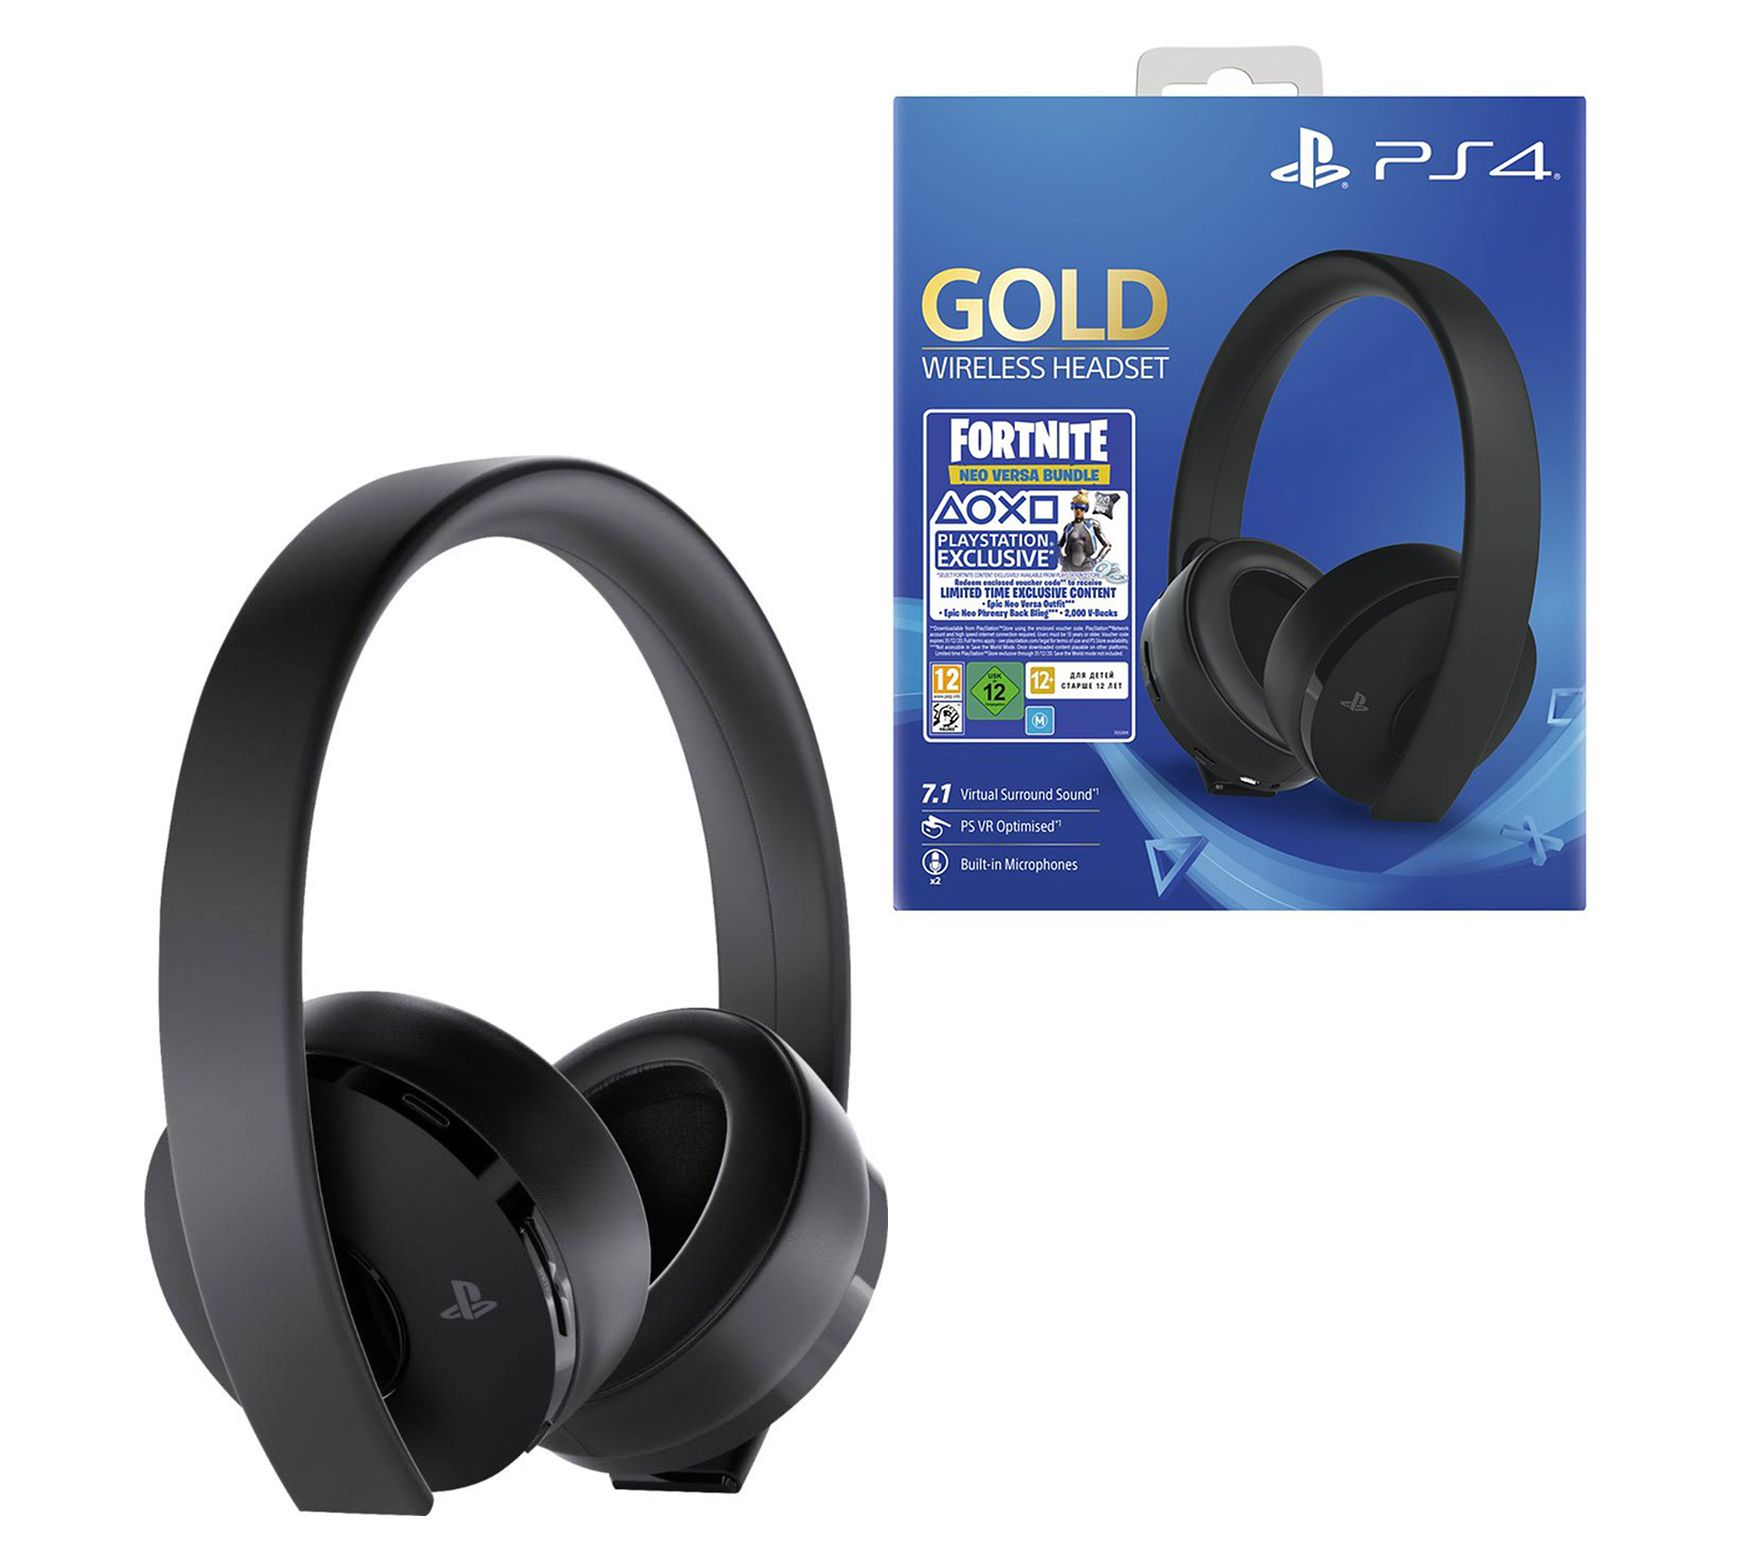 Ps4 Gold Wireless Headset With Fortnite Neoversa Bundle Qvc Com